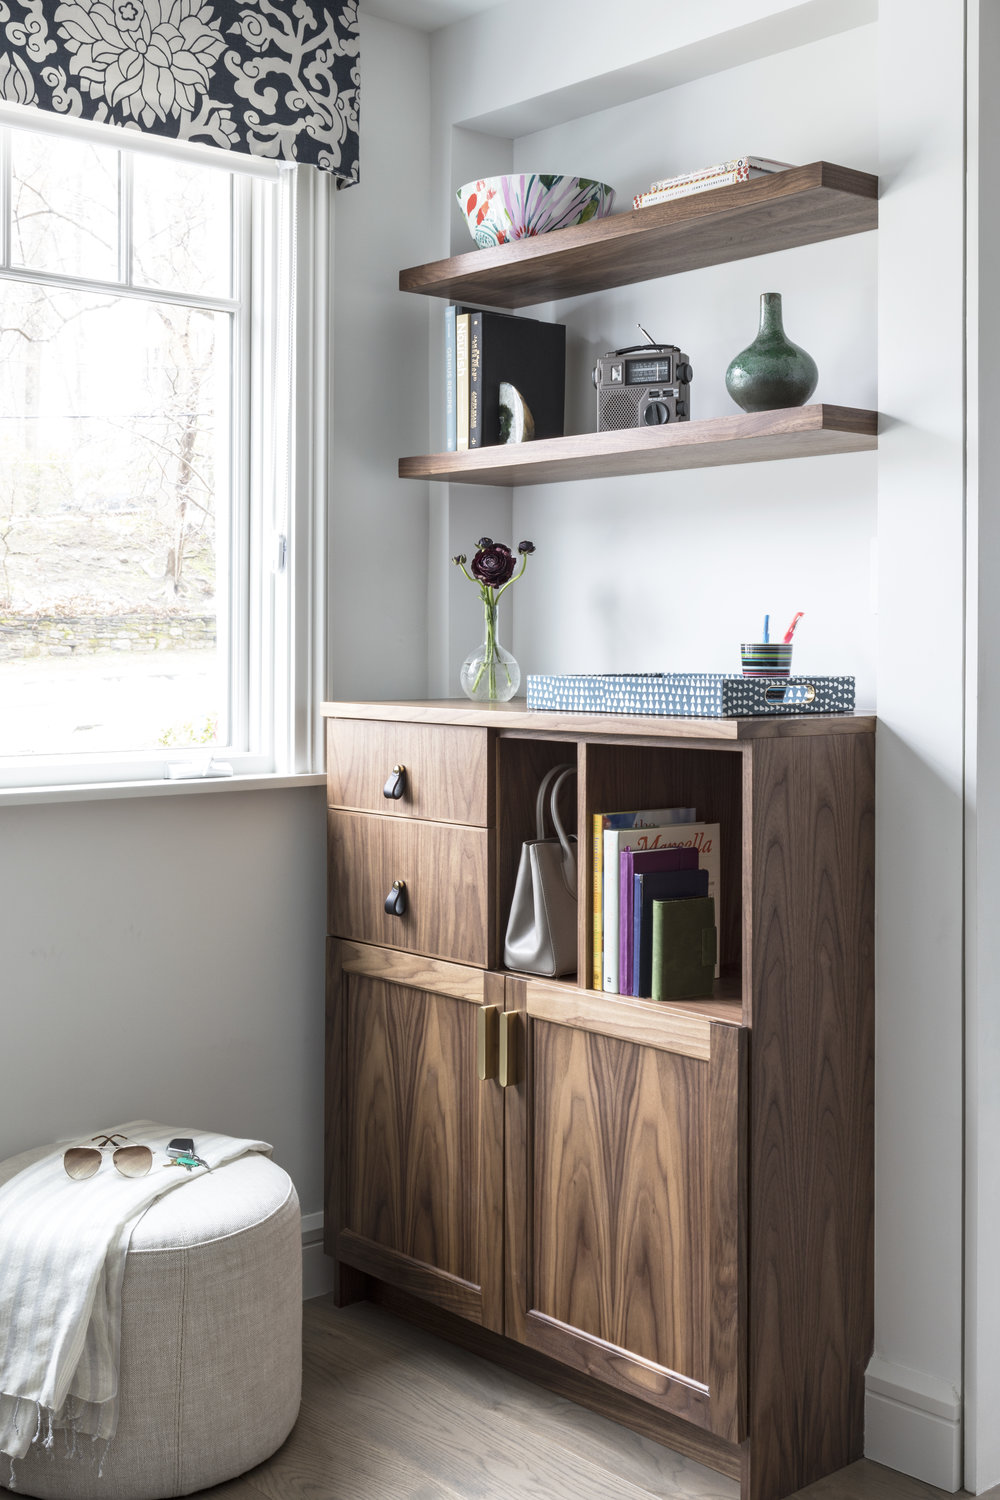 Custom-Wood-Entry-Console-Organizer-Charging-Station-Jmorris-Design-Interior-Designer-Brooklyn-Online-Edesign.jpg